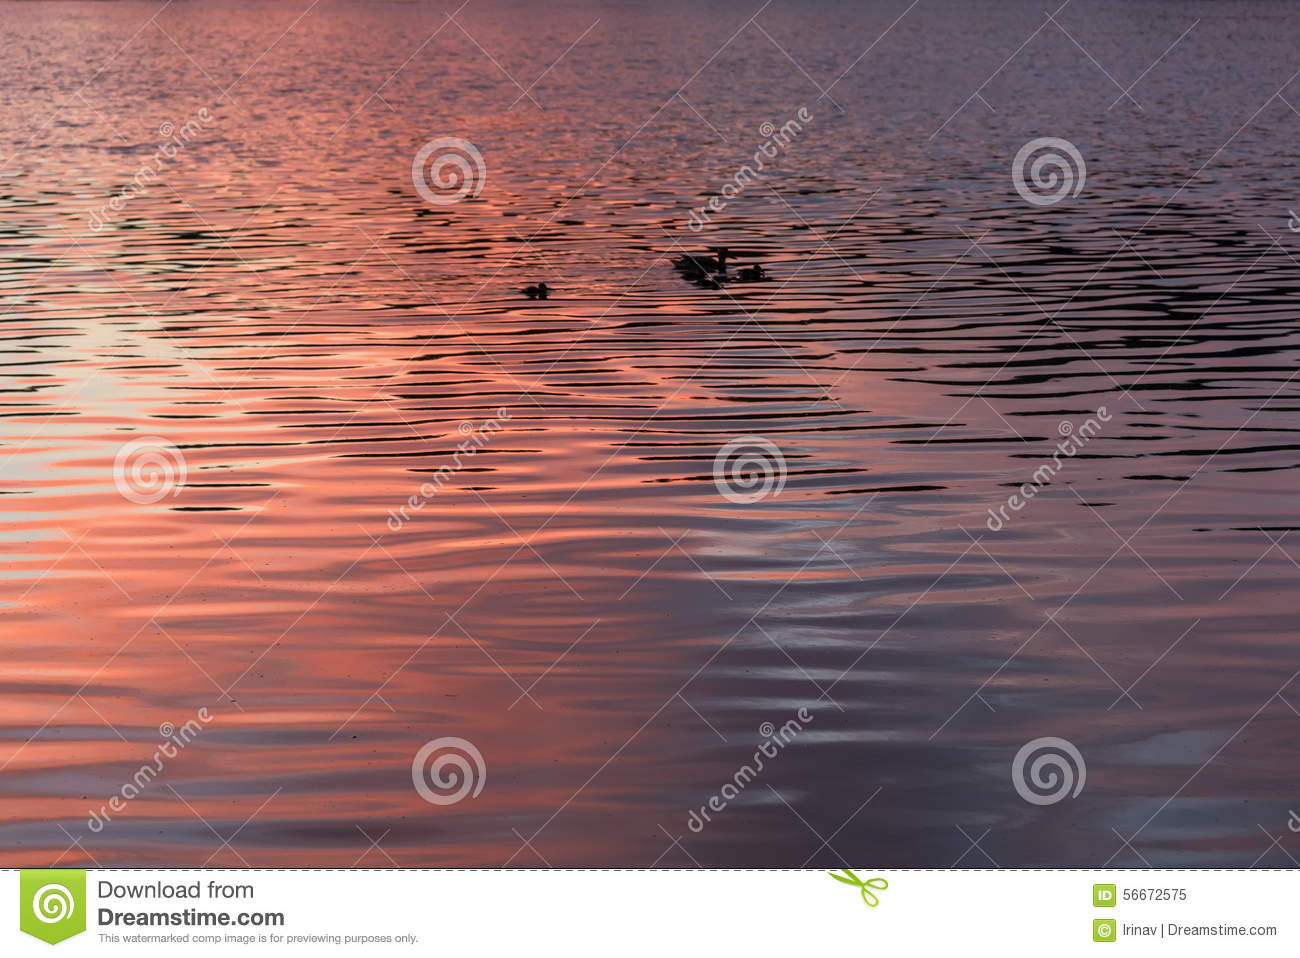 Texture water sunset background